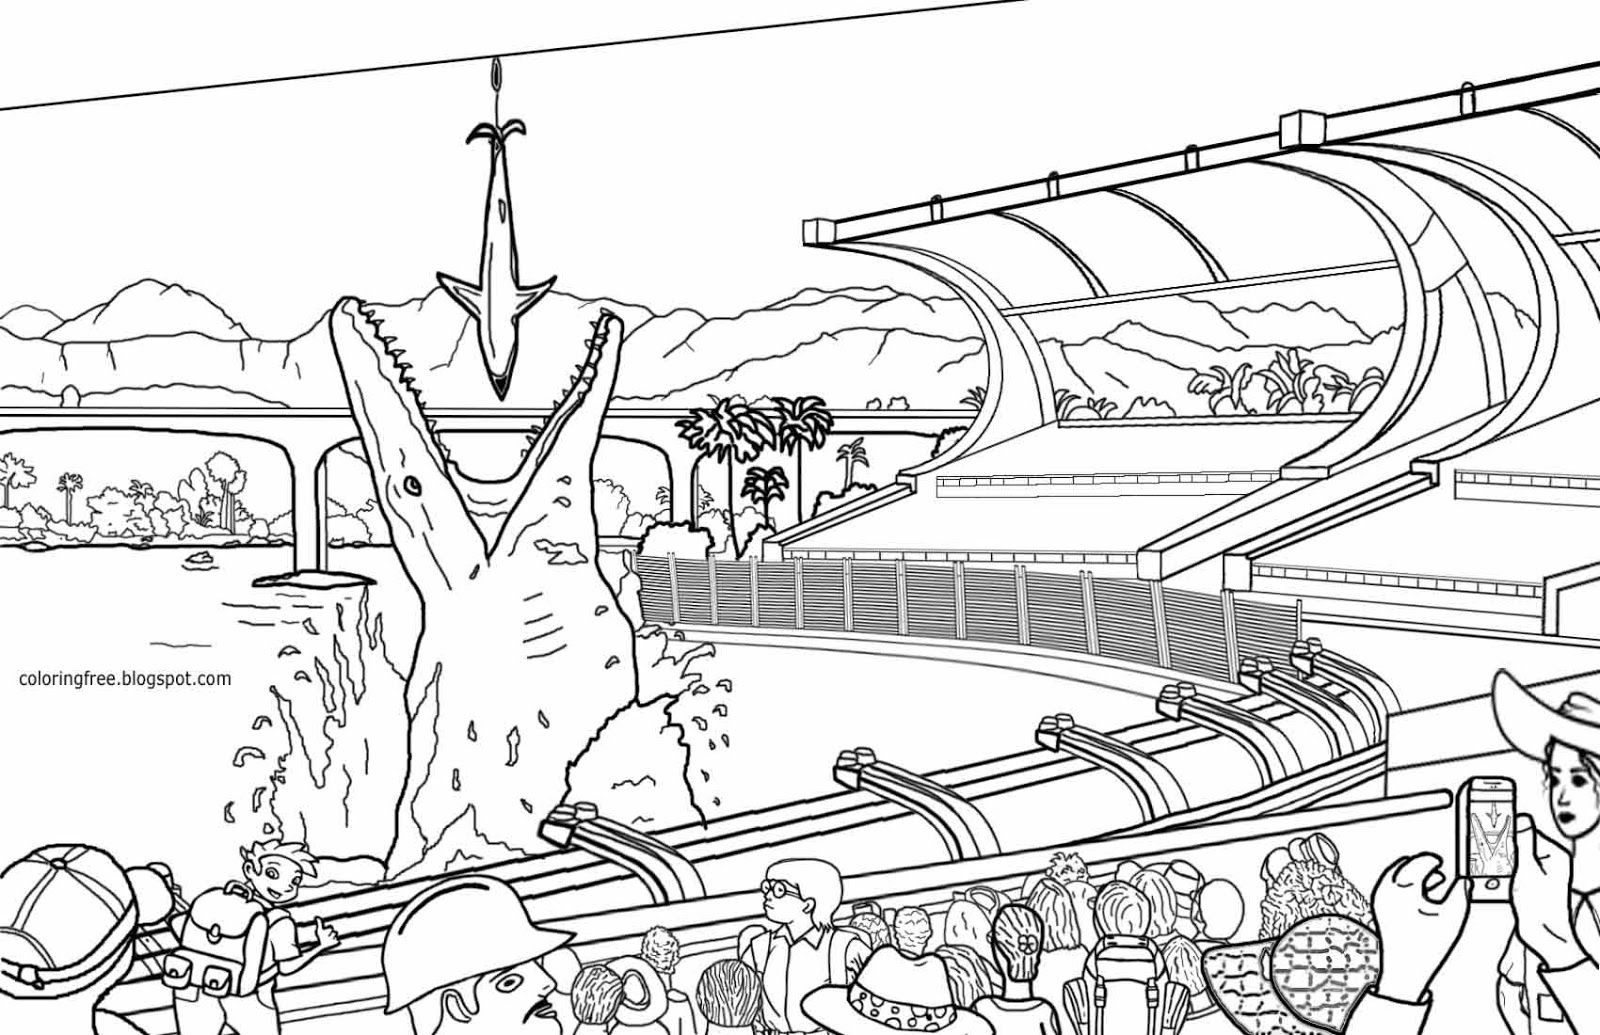 Walt Disney World Coloring Pages | Mickey coloring pages, Cartoon ... | 1035x1600